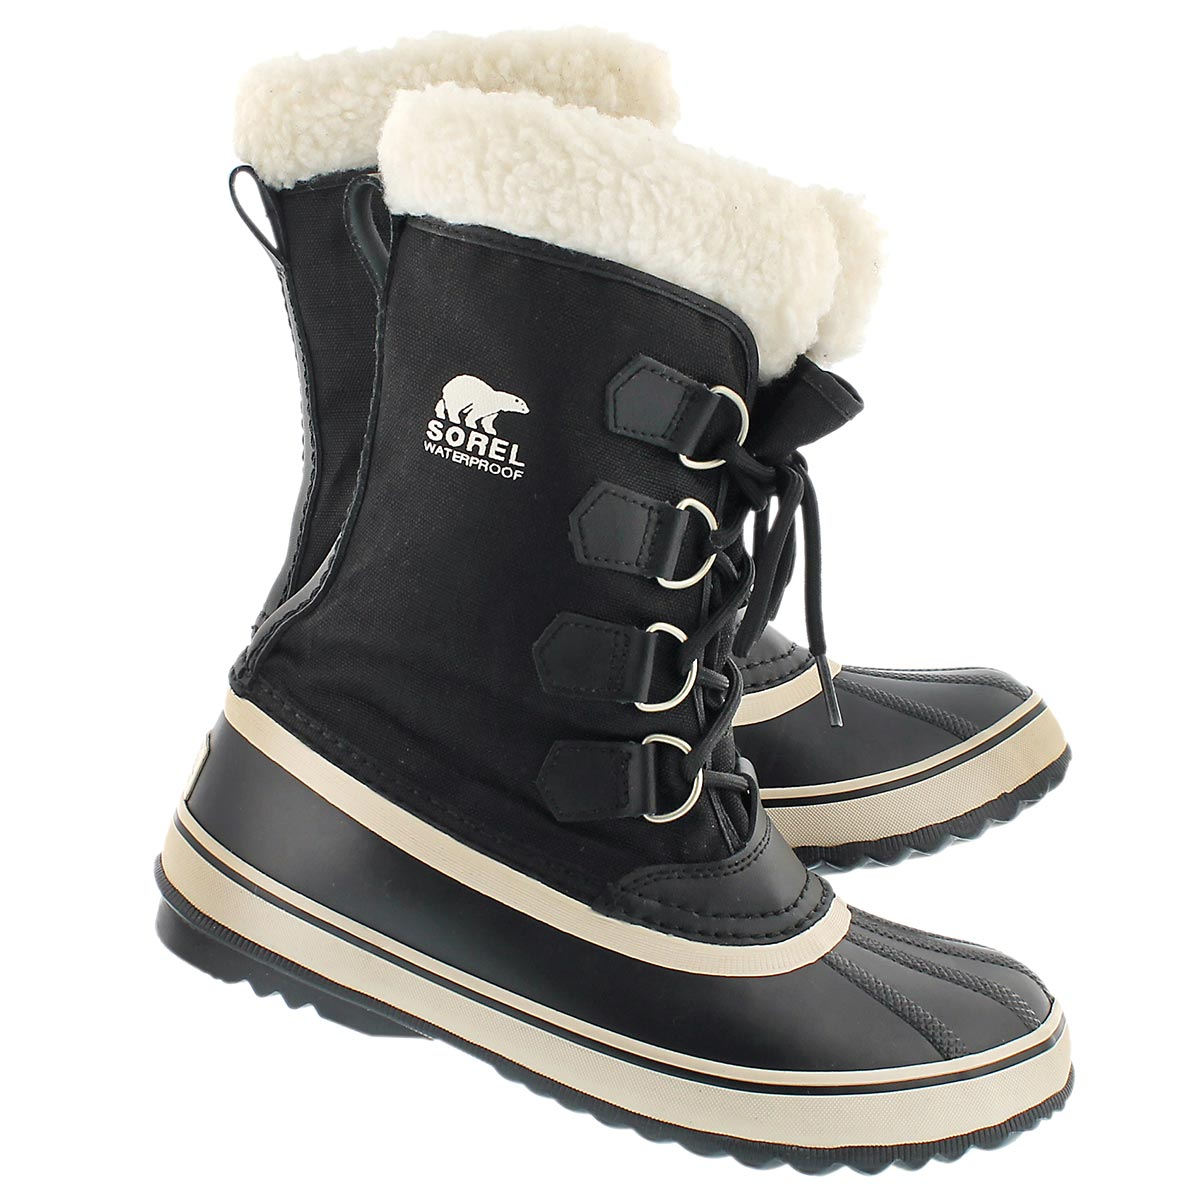 Women's winter snow boots clearance – Modern fashion jacket photo blog